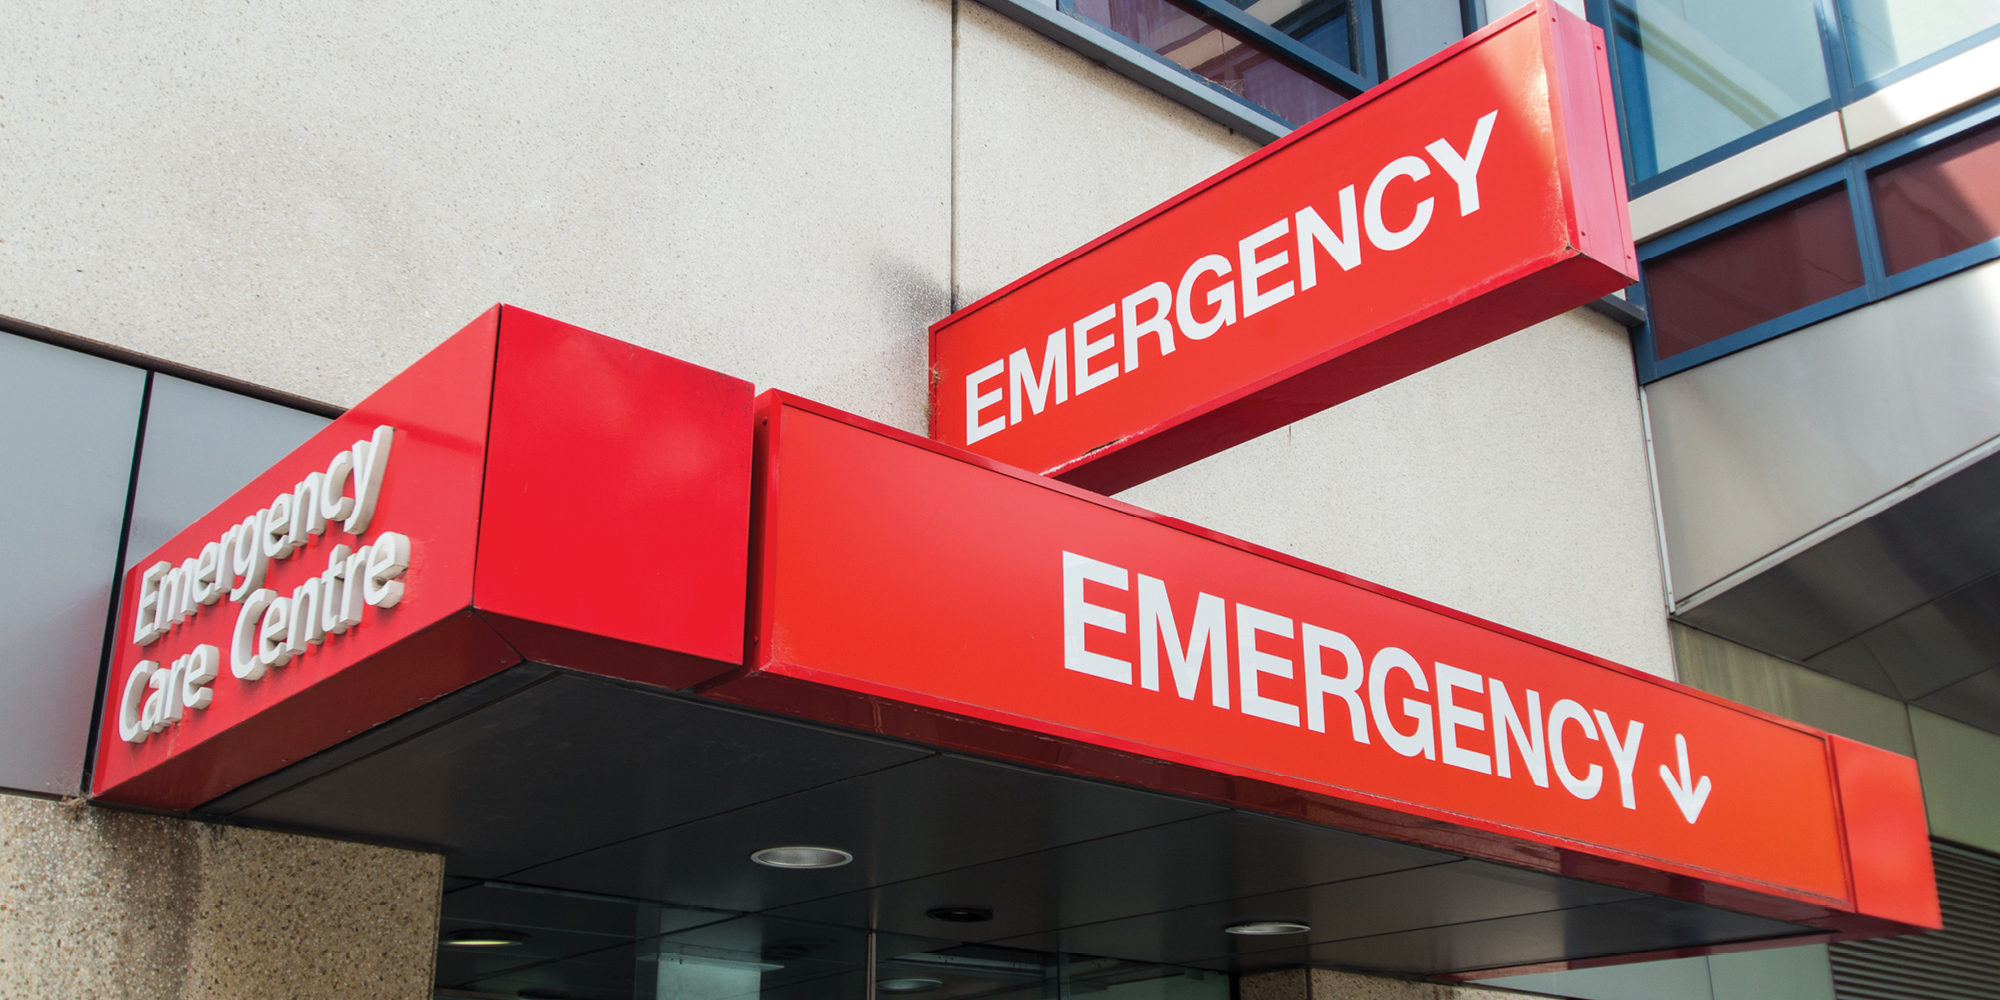 Emergency department signs